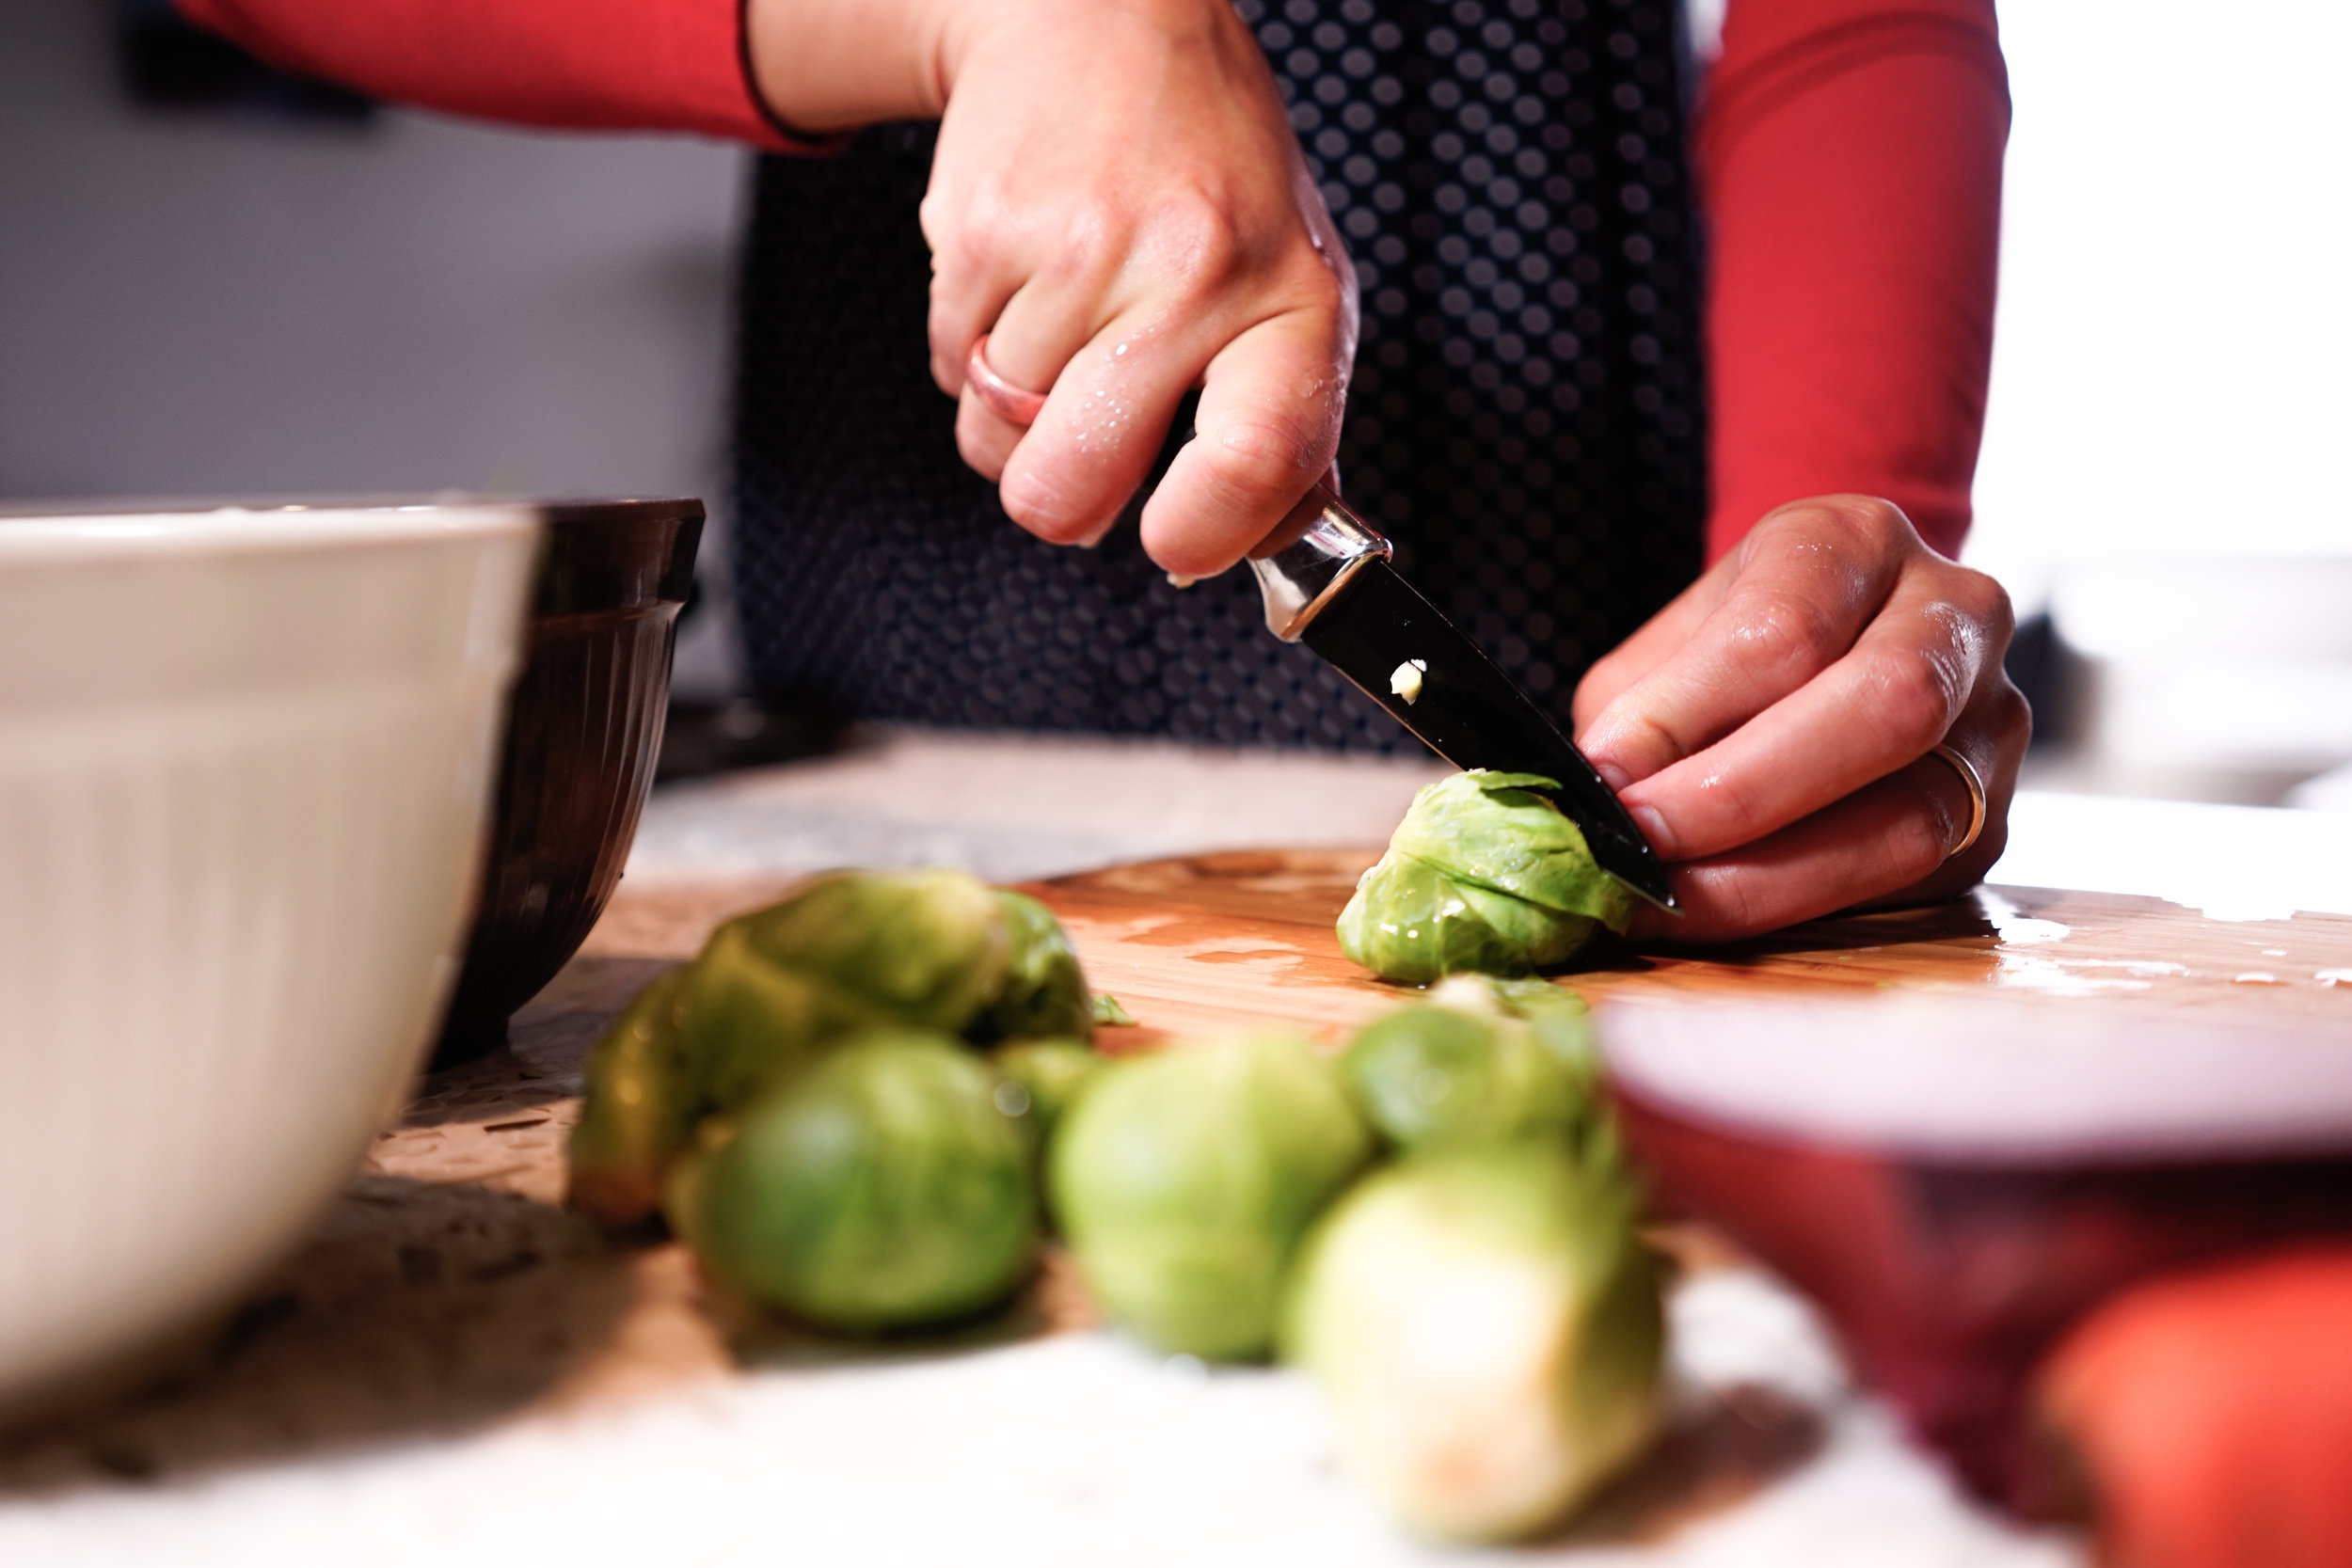 jillian chops brussels sprouts-1.JPG